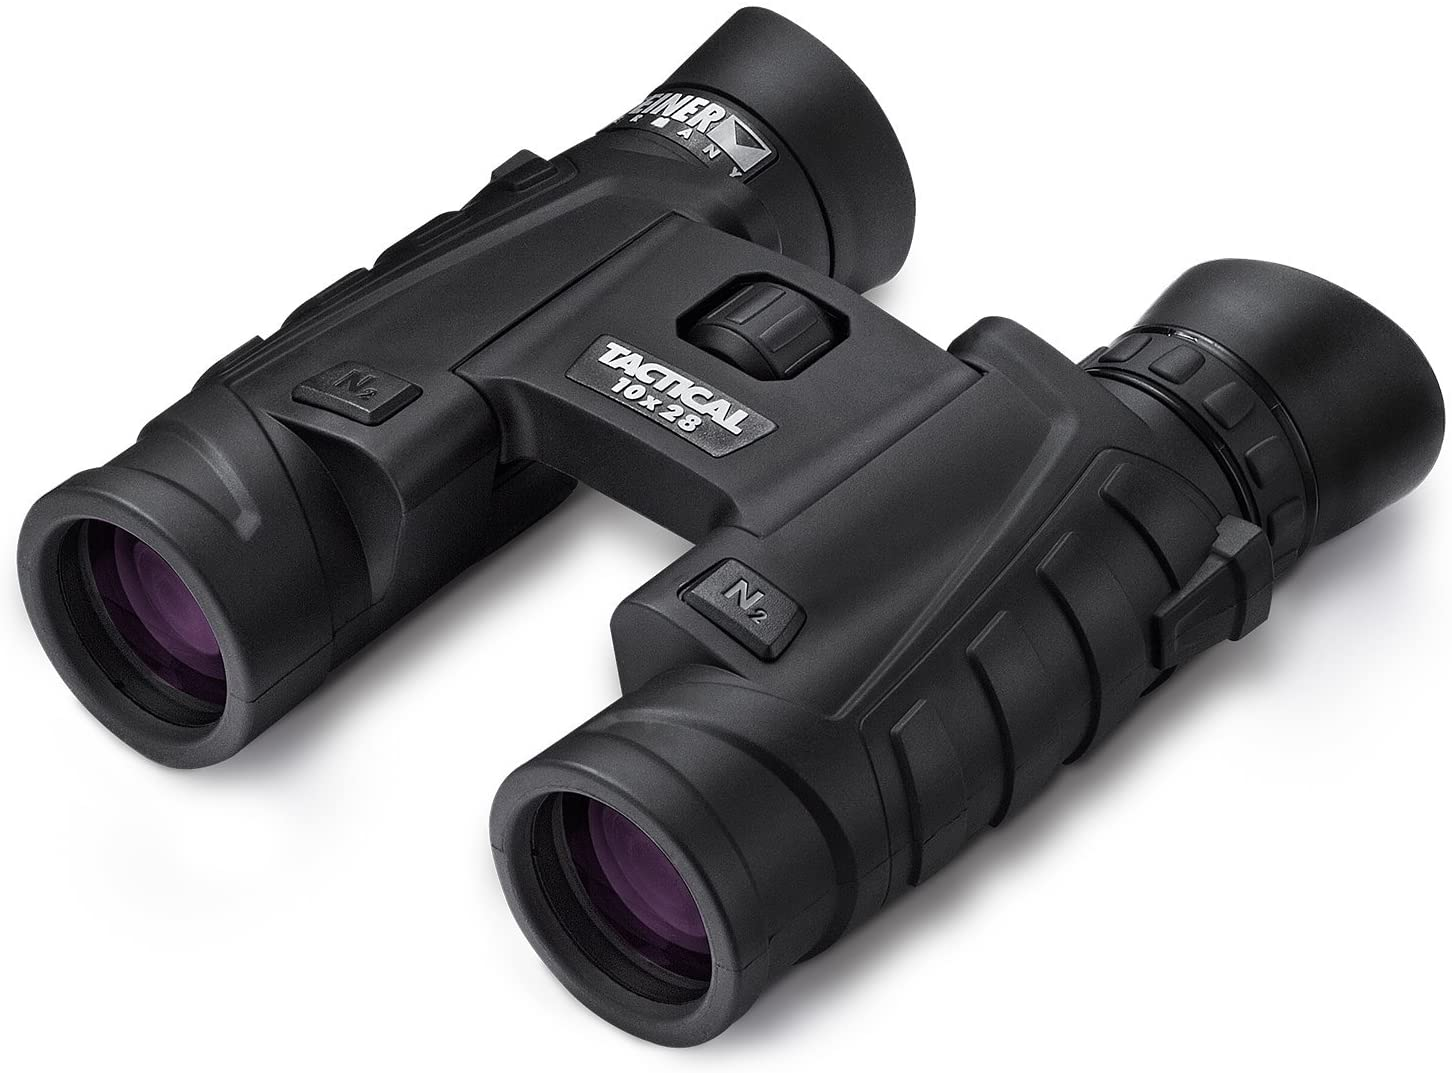 Top 10 Best Compact Binoculars 2021 Reviews 1